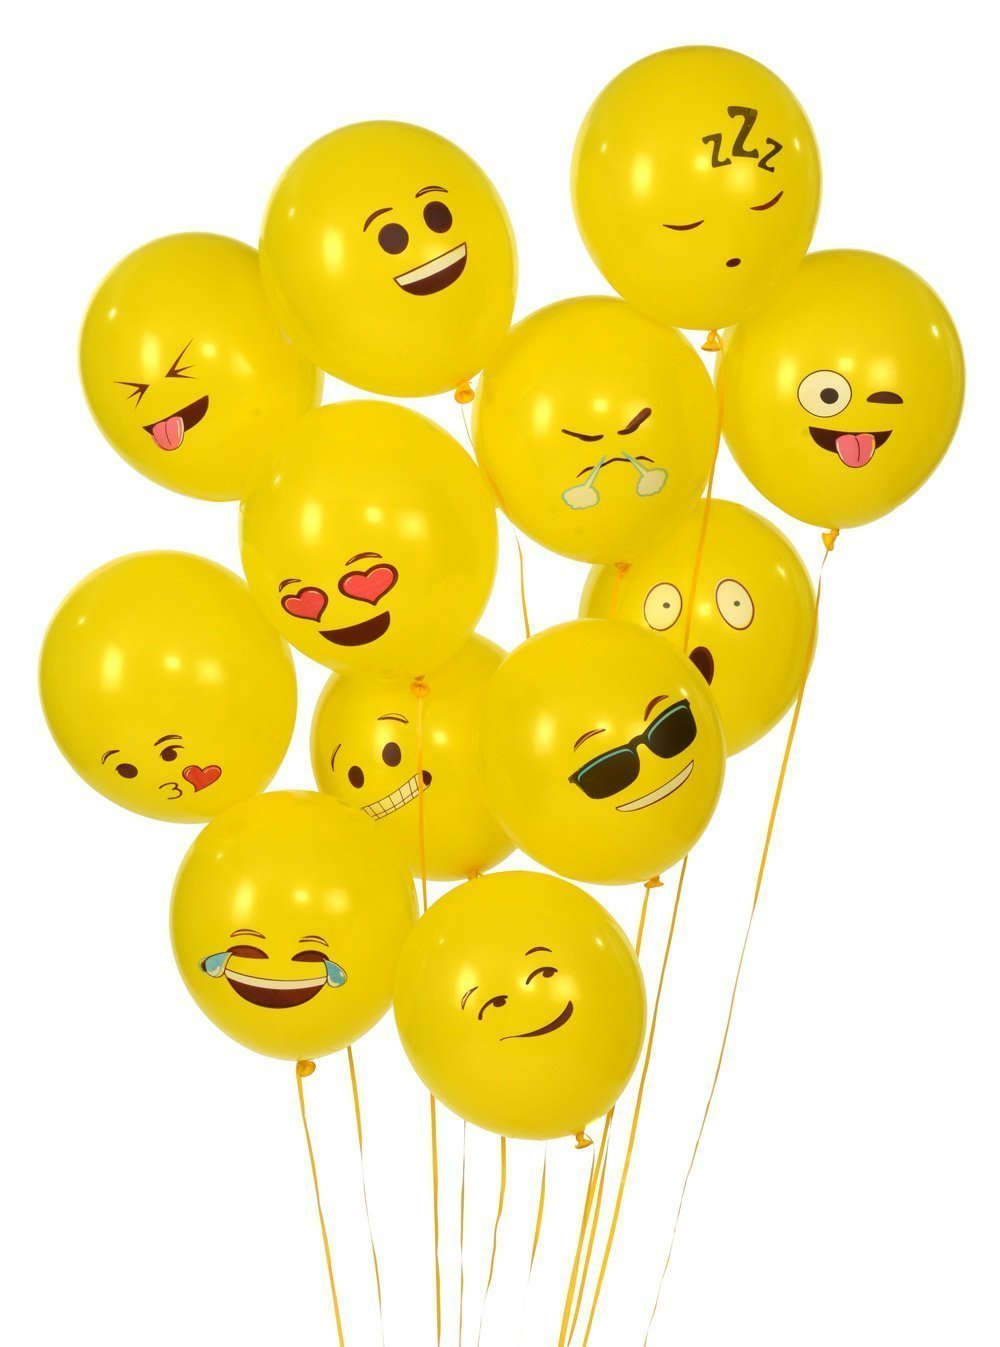 Funny balloon faces - Amazon Com Emoji Universe Series One Latex Emoji Smiley Face Balloons 72 Pack Yellow Toys Games